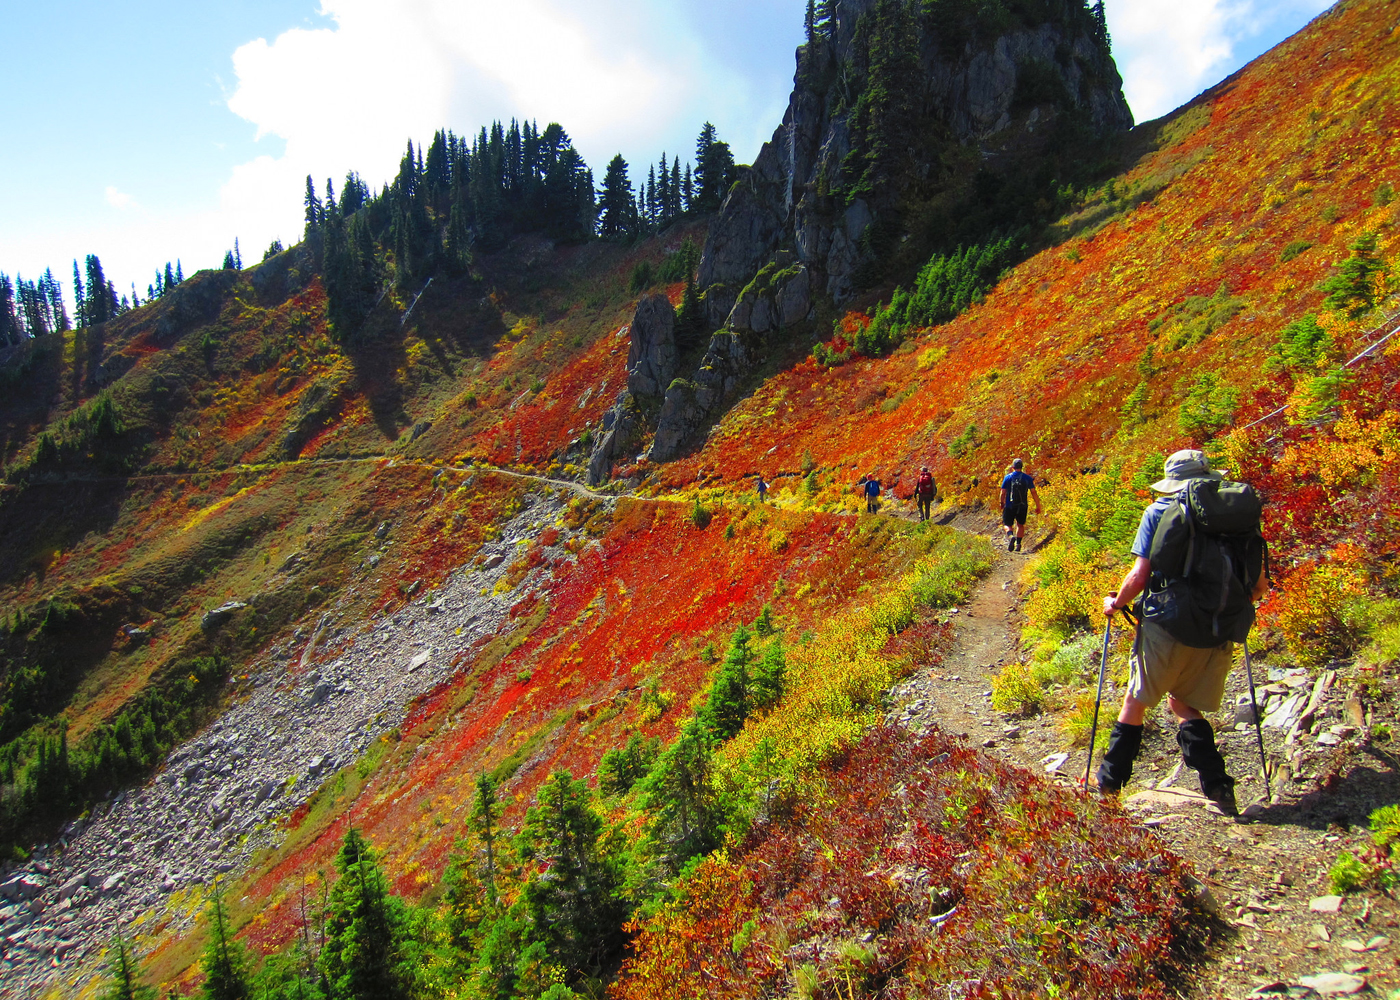 Day Trips With Kids In Washington State